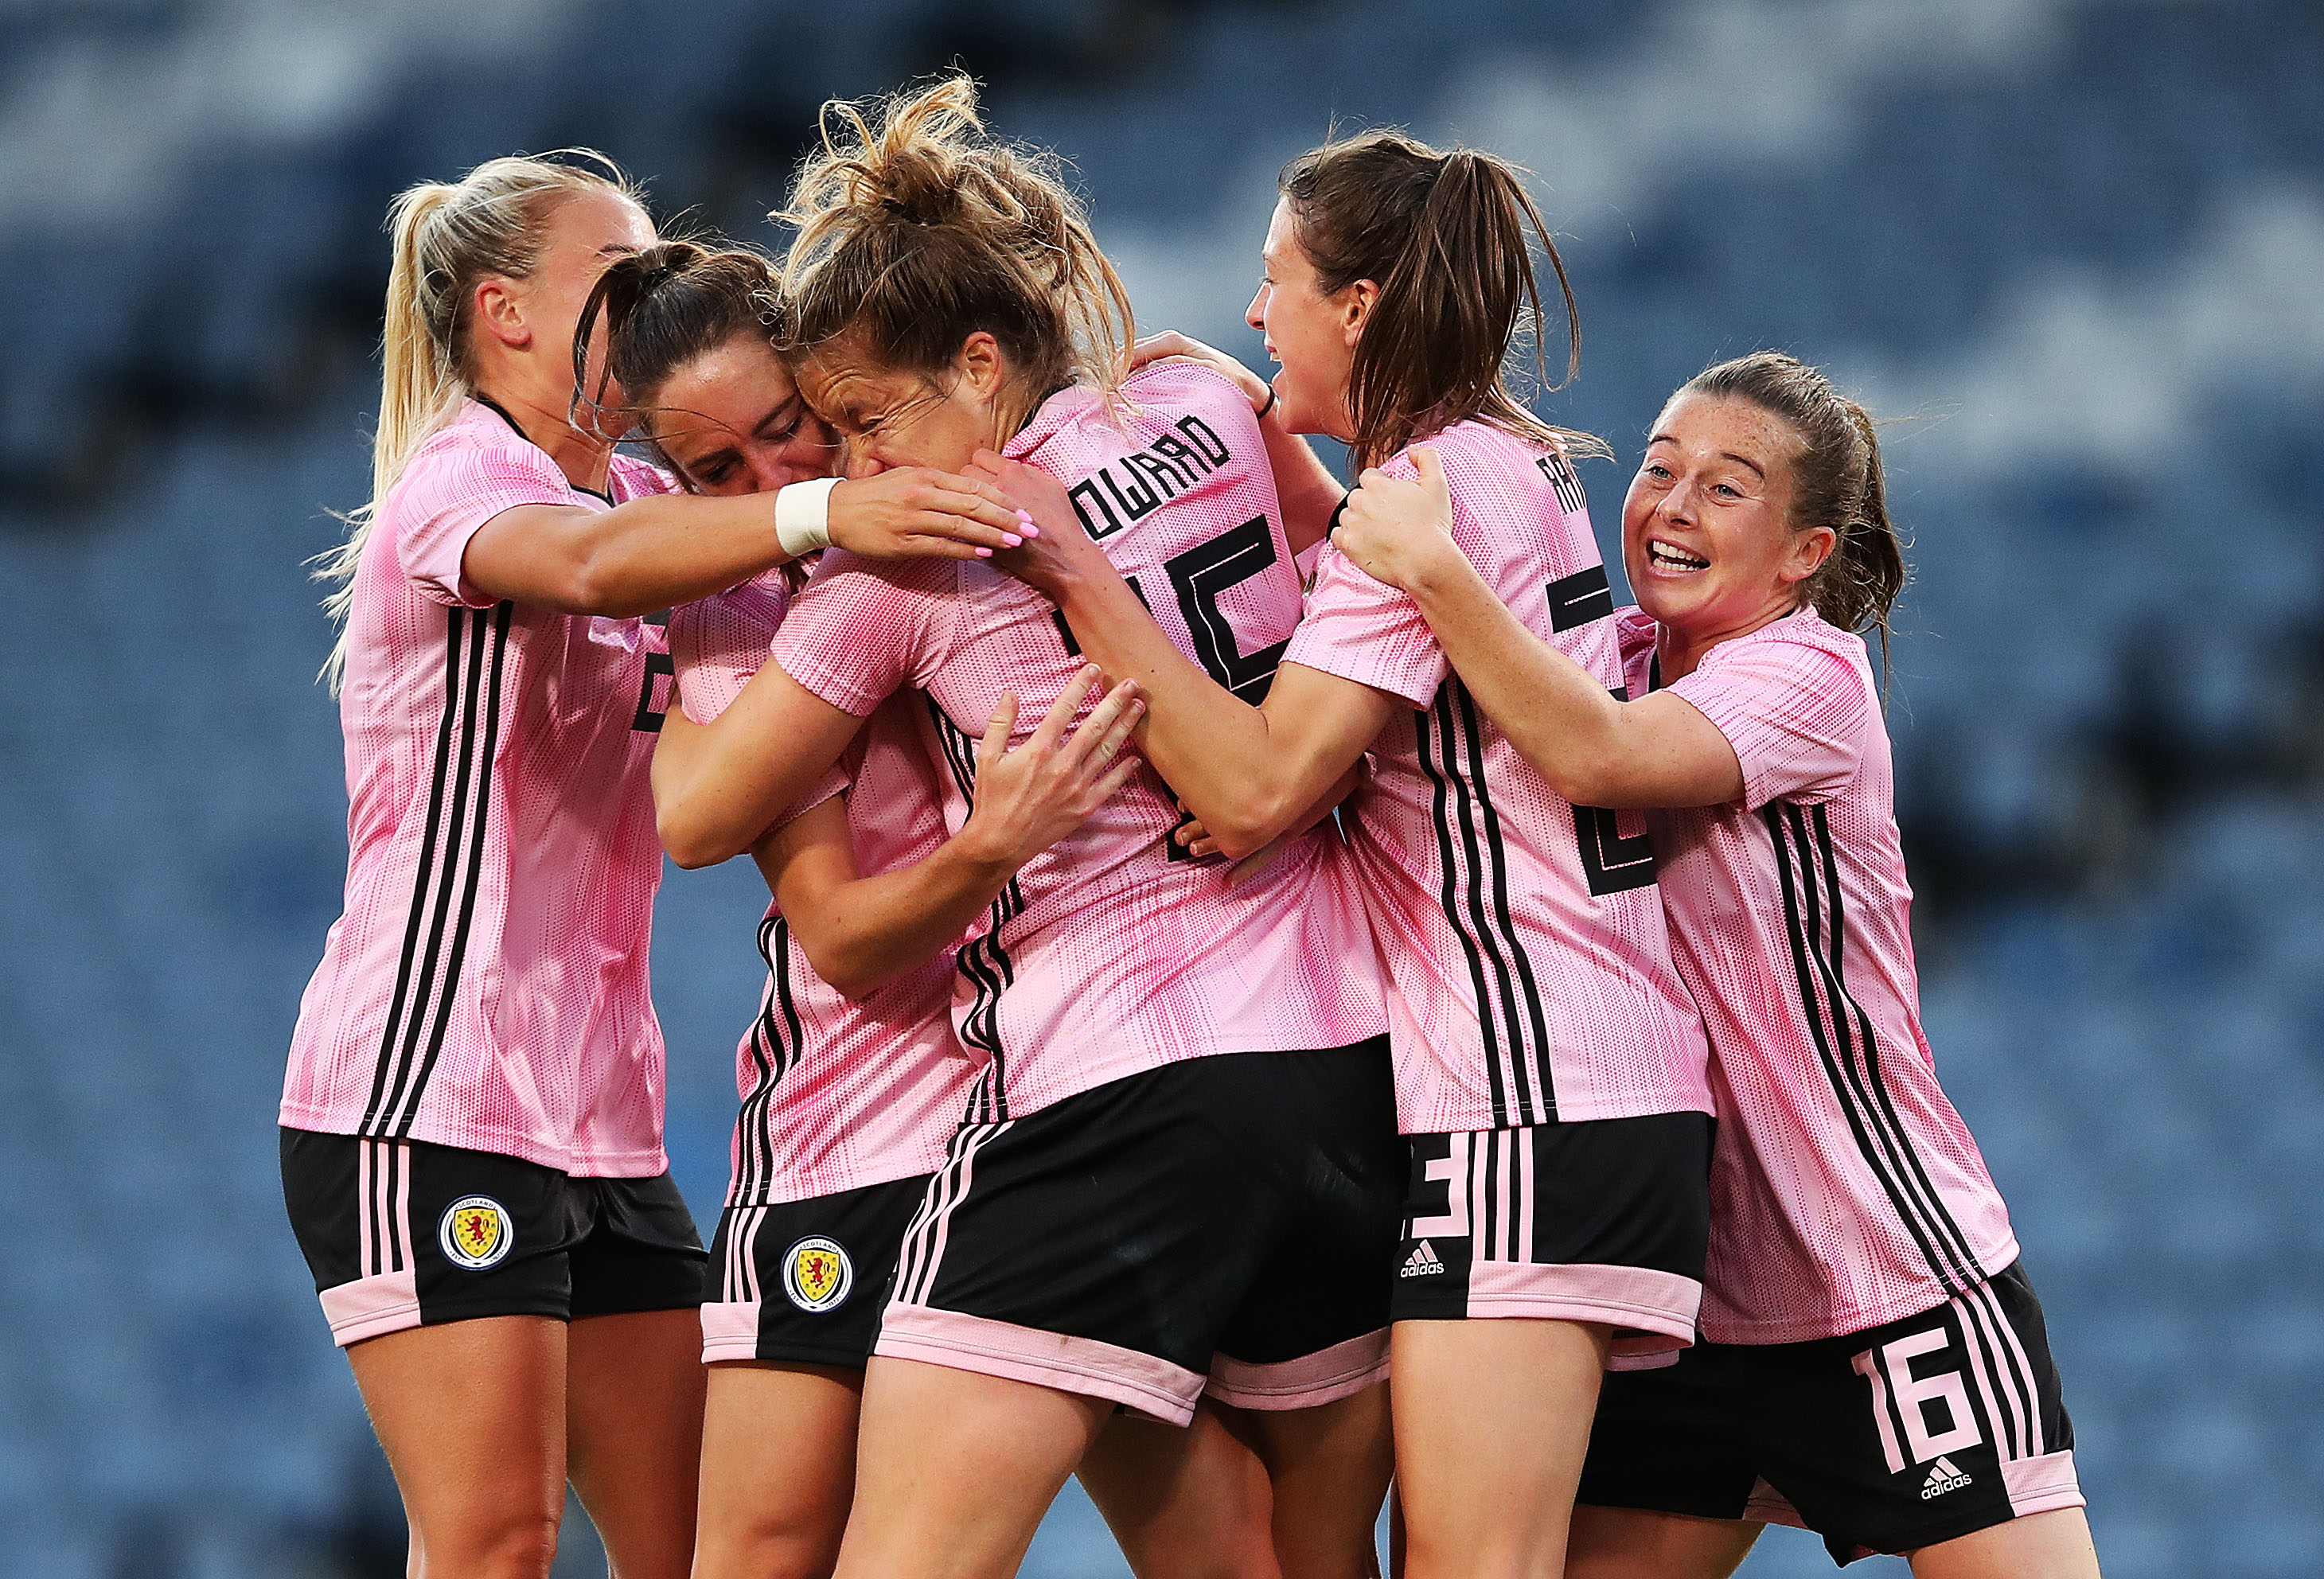 Scotland's women are heading to the World Cup this month